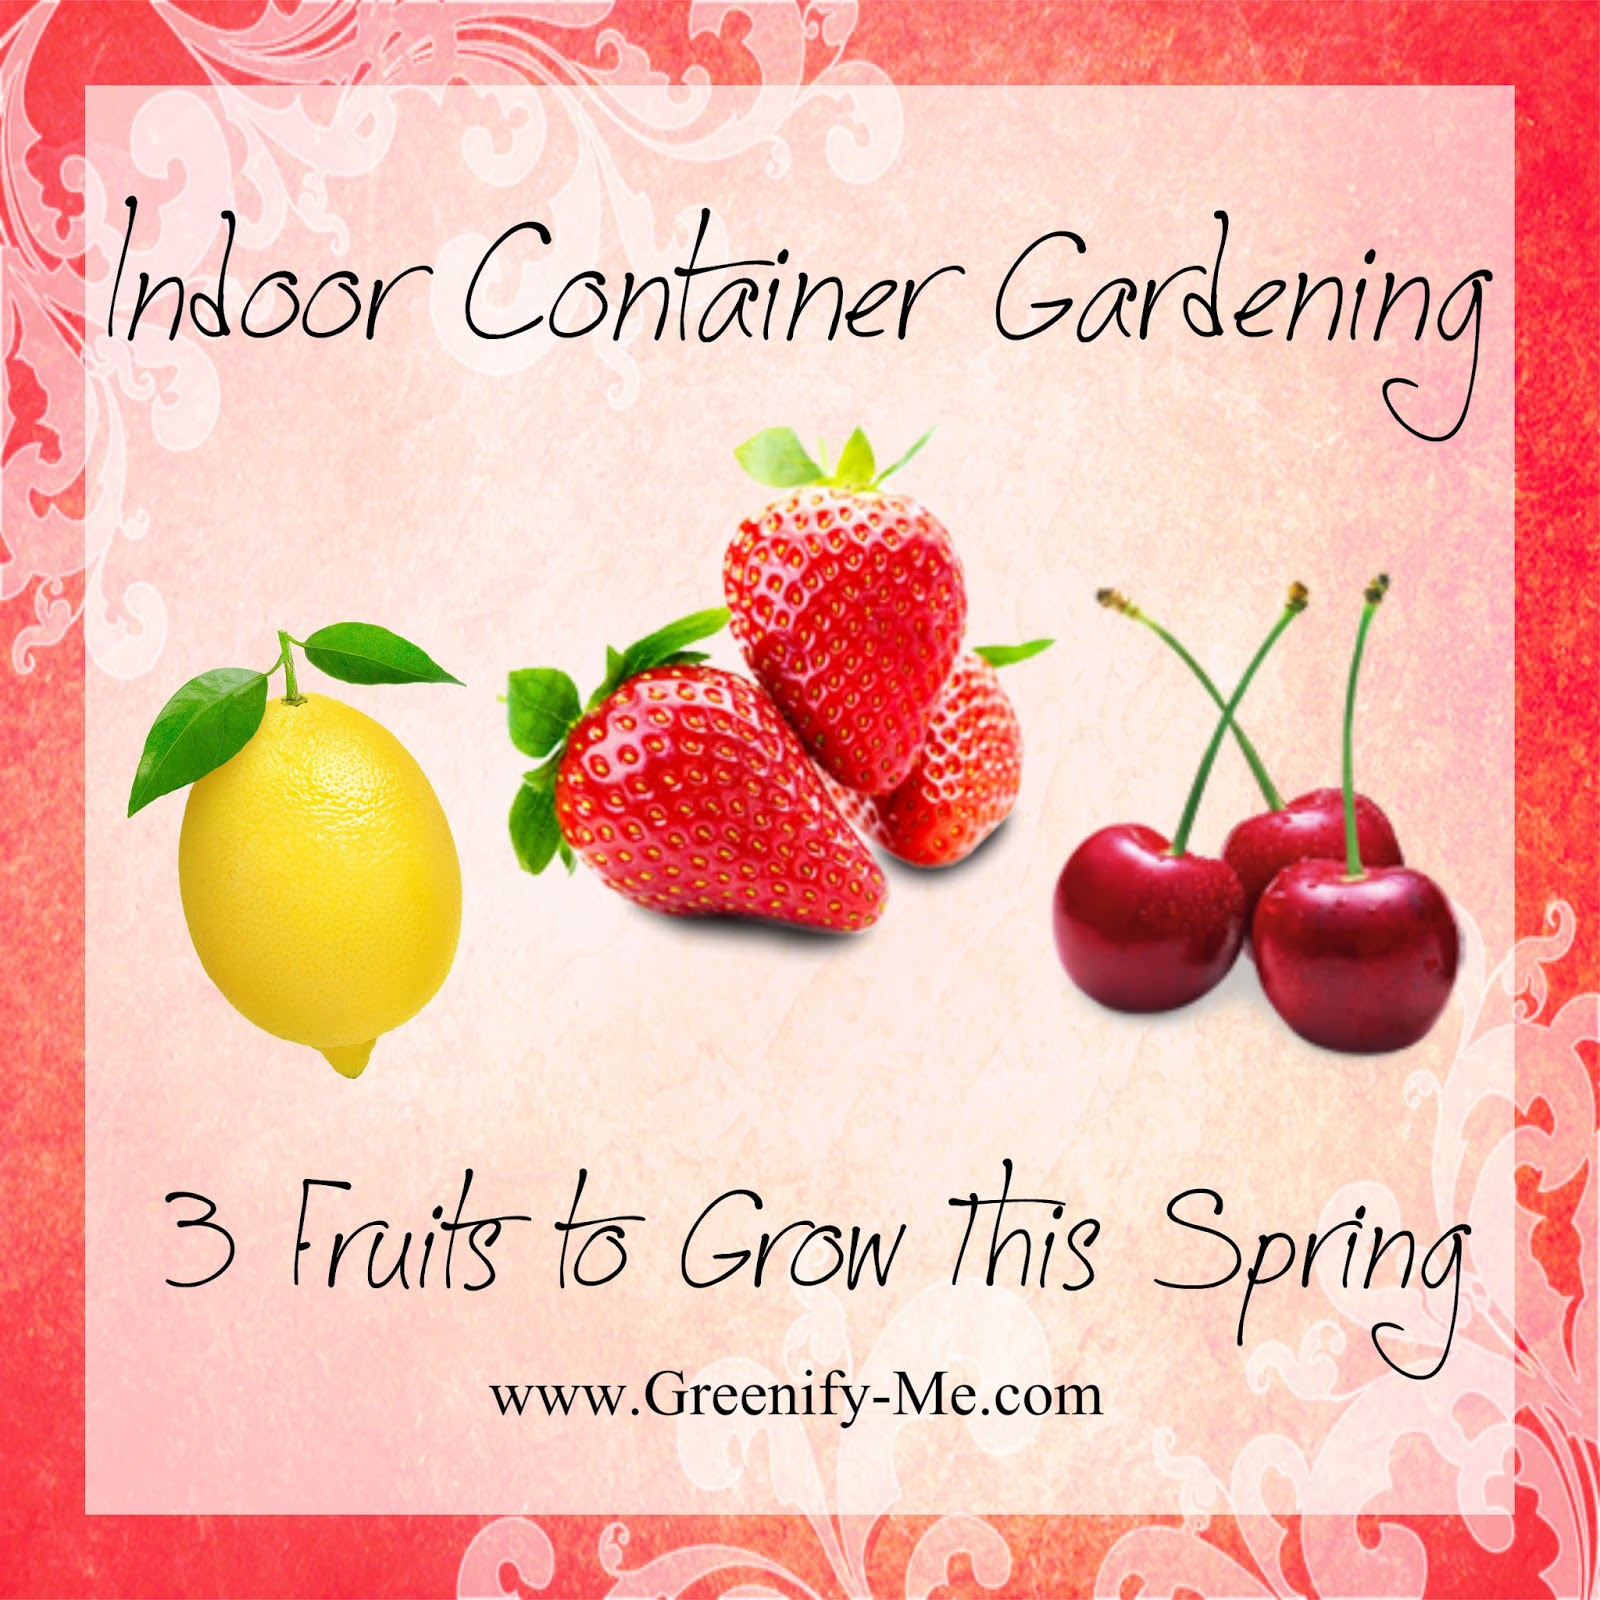 Indoor Container Gardening: 3 Fruits to Grow This Spring - Greenify Me